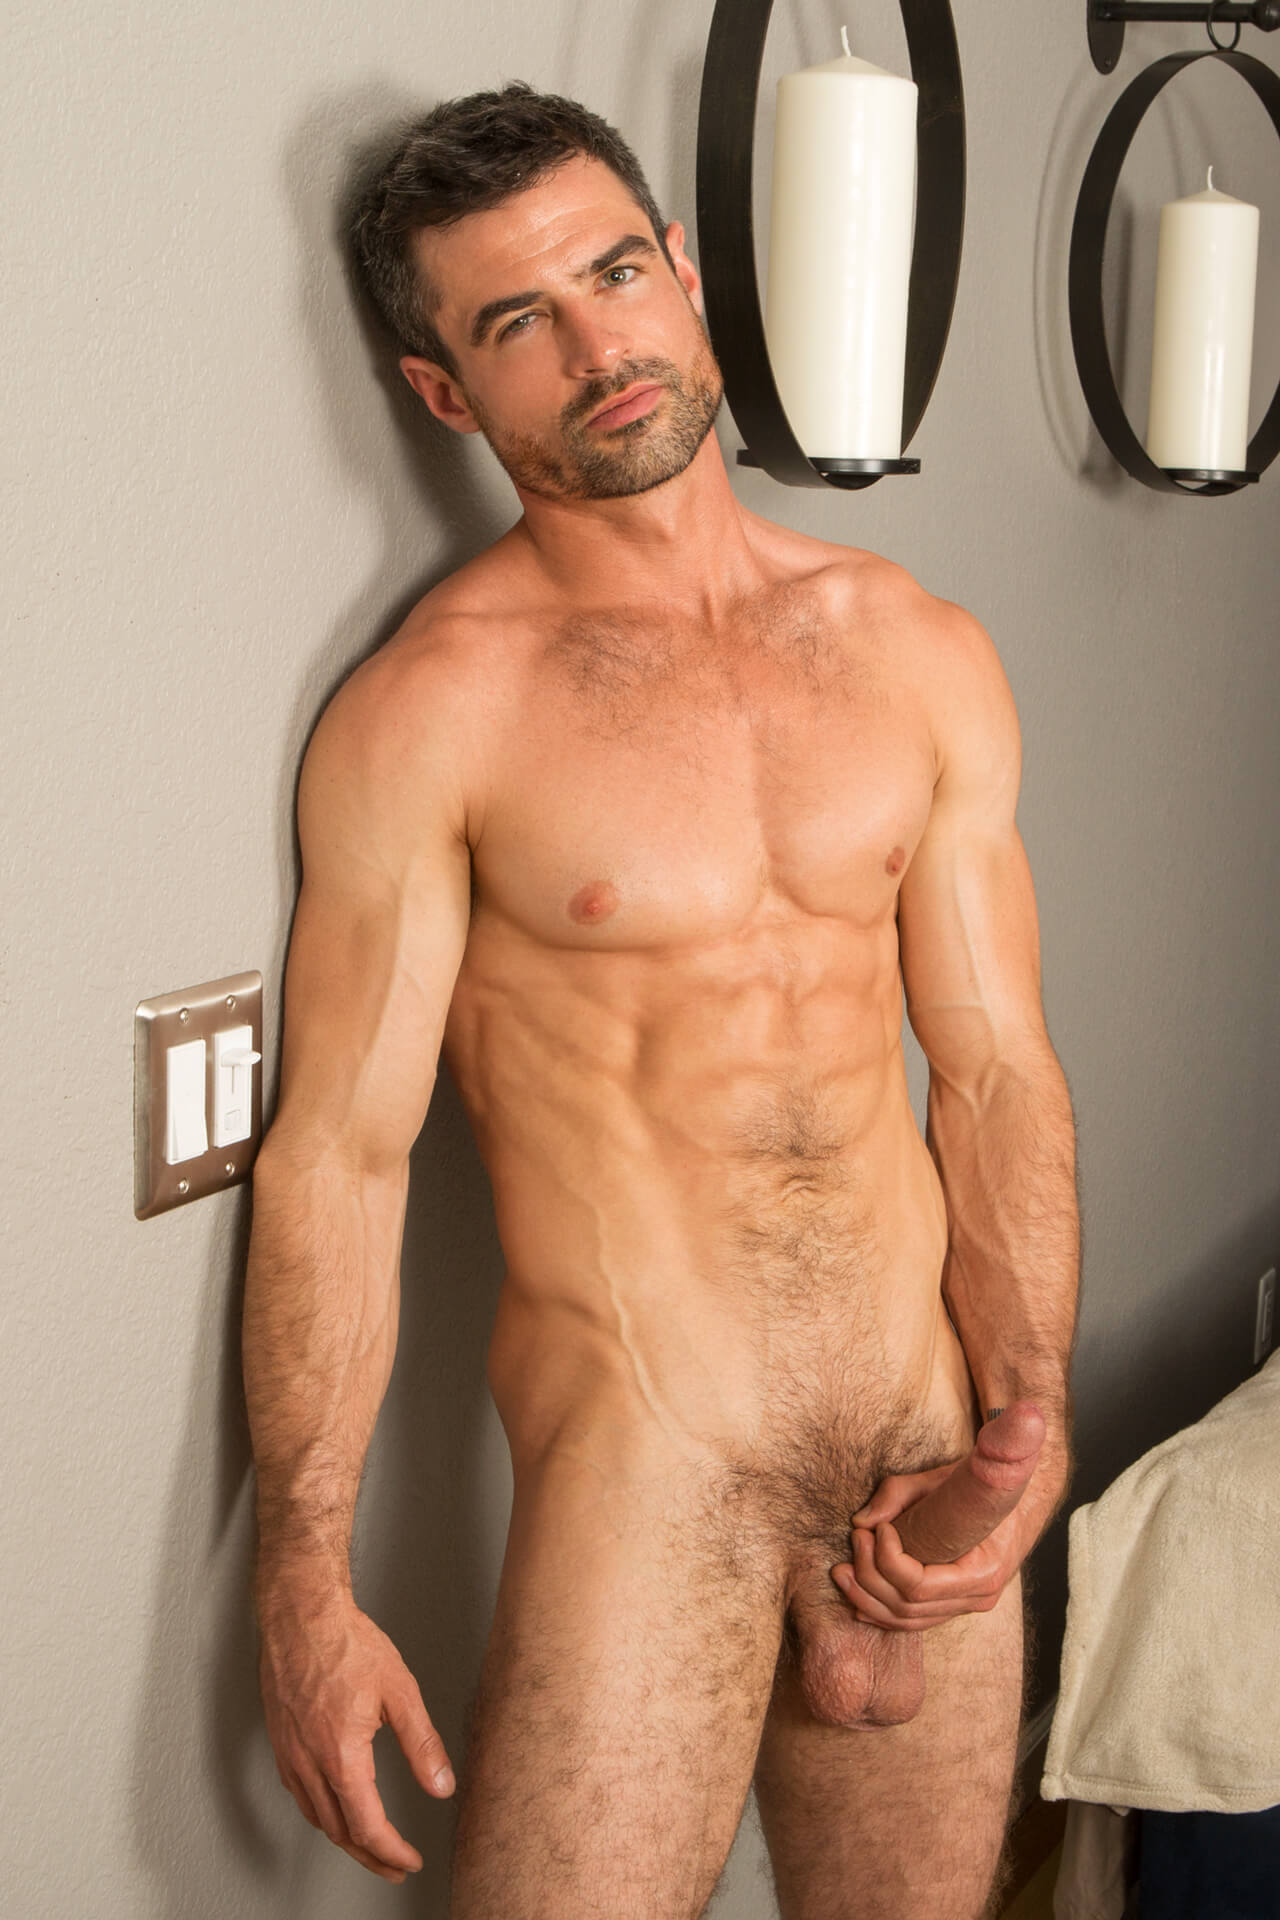 sean cody bareback daniel lane gay porn blog image 3